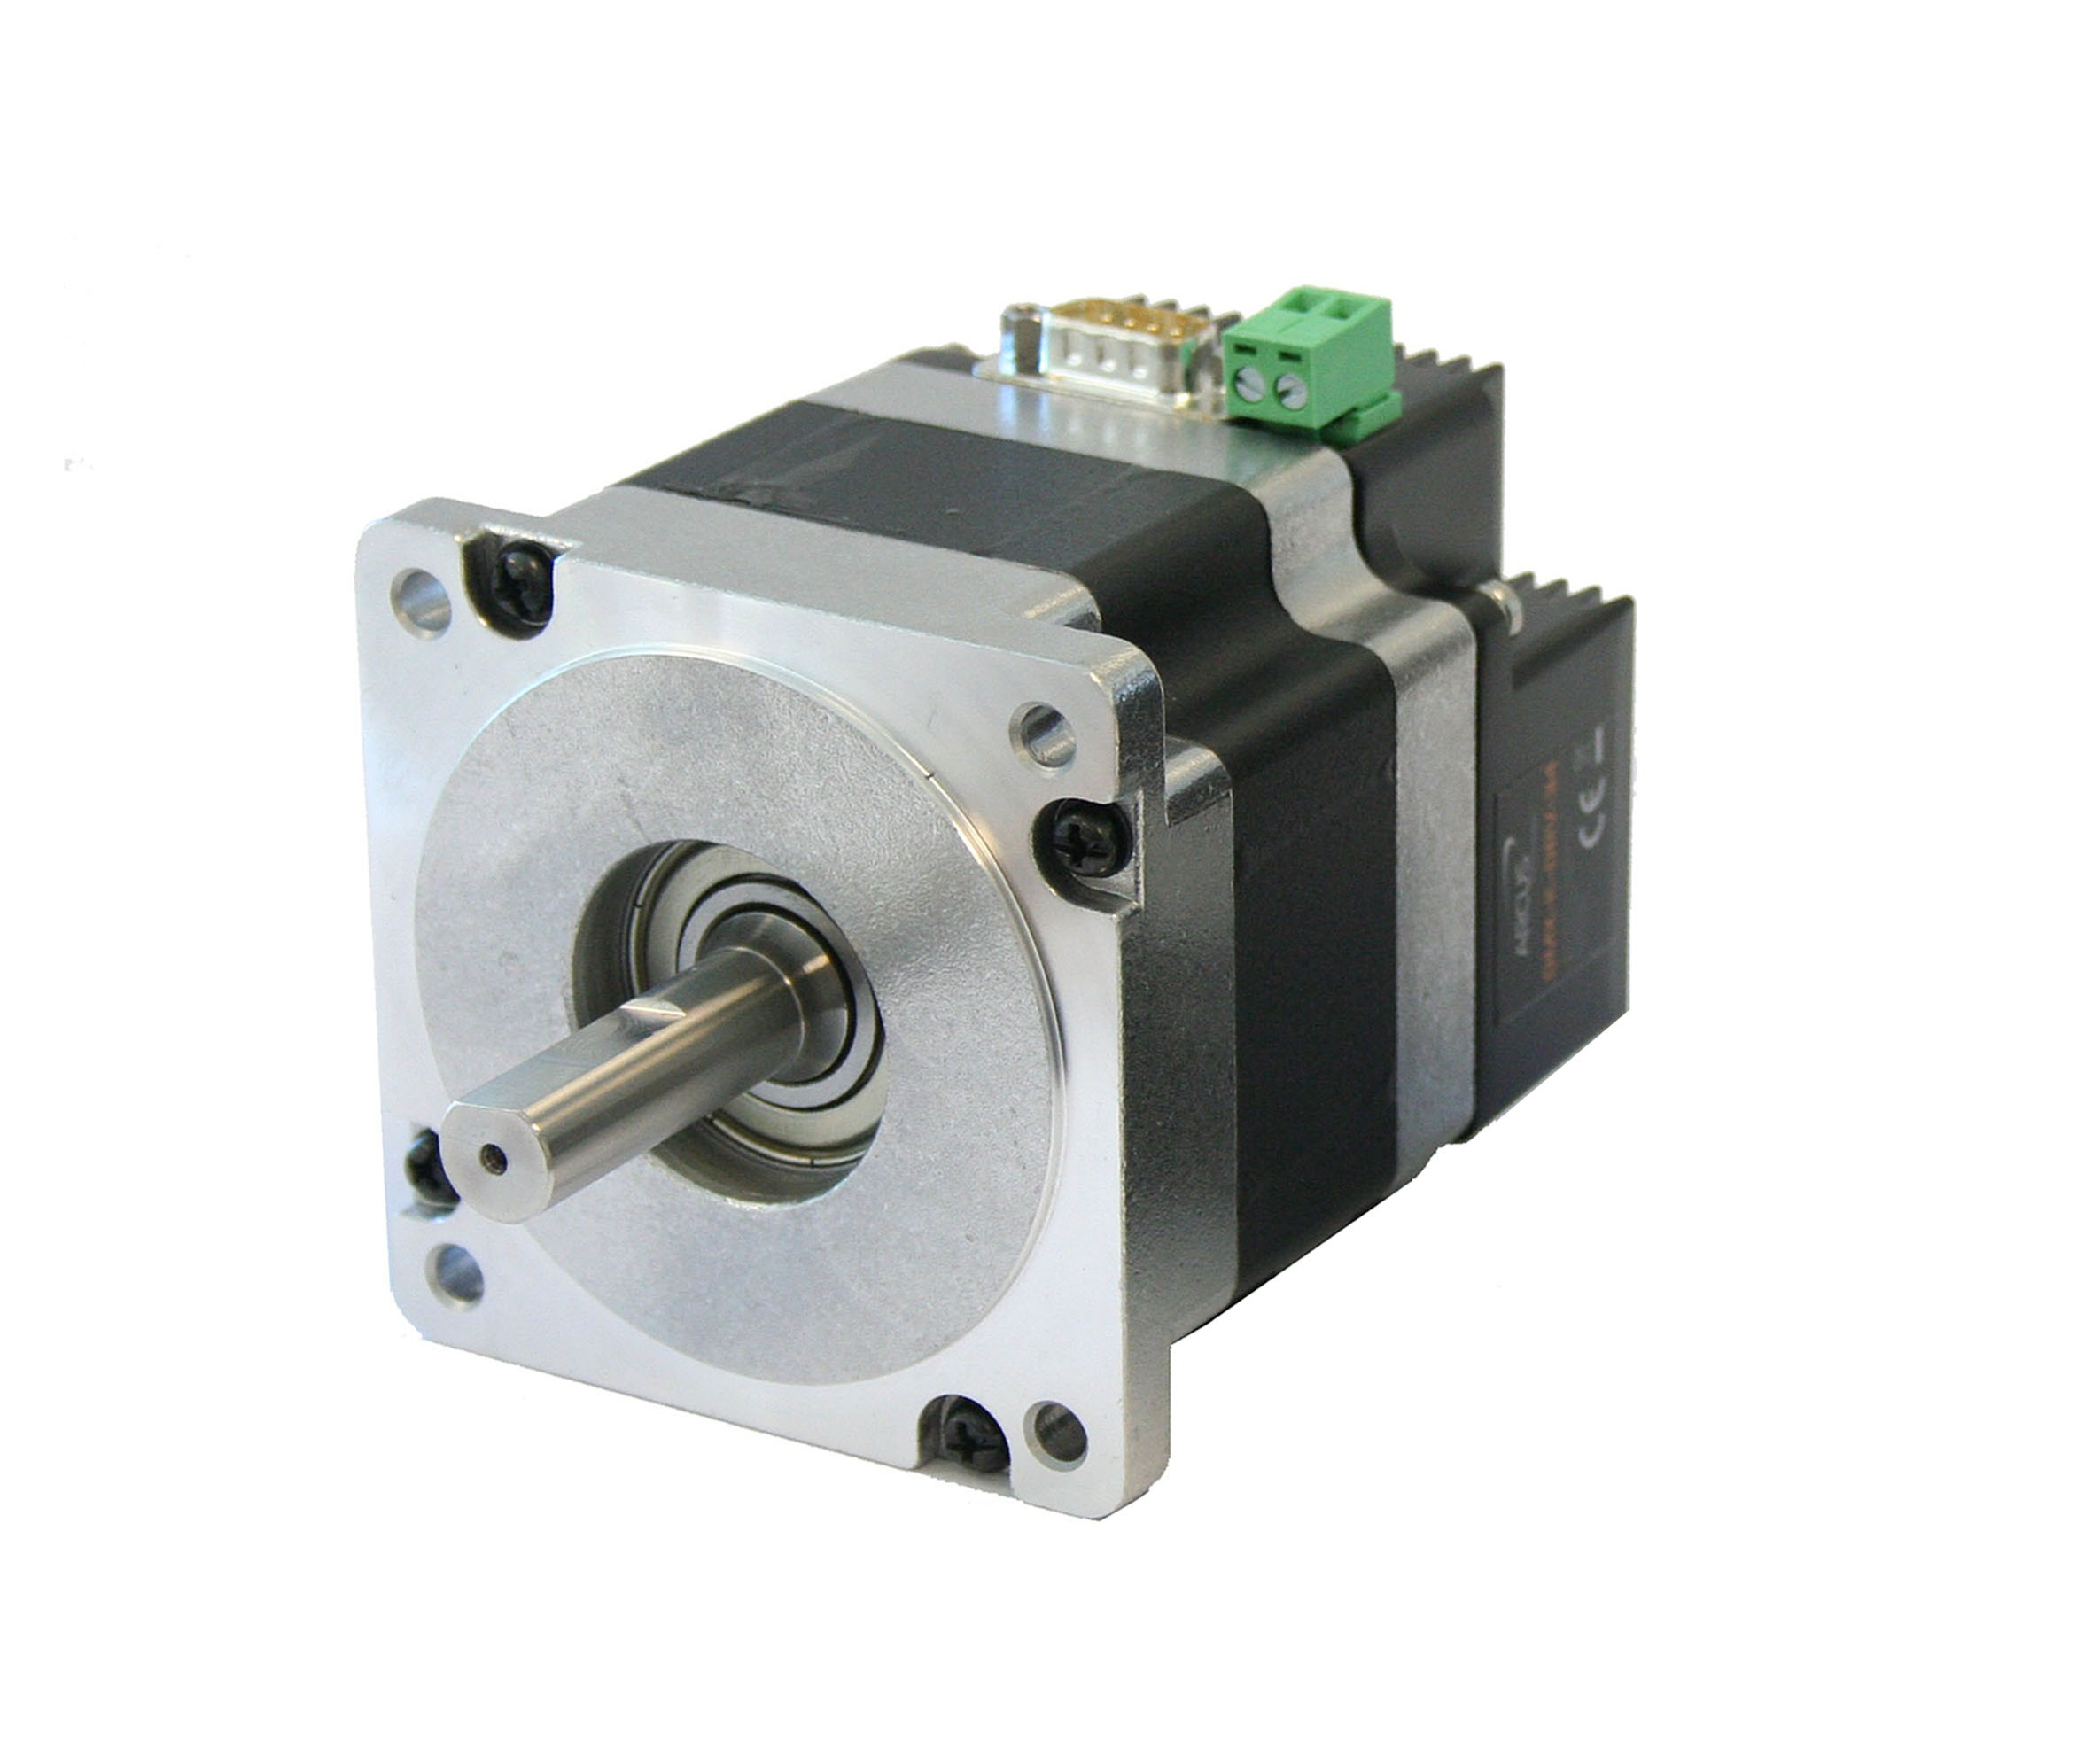 Integrated Stepper Motor Drivers Arcus Technology Inc Power Supply For Drive A May Dmx K Drv 34 Basic Microstep Driver